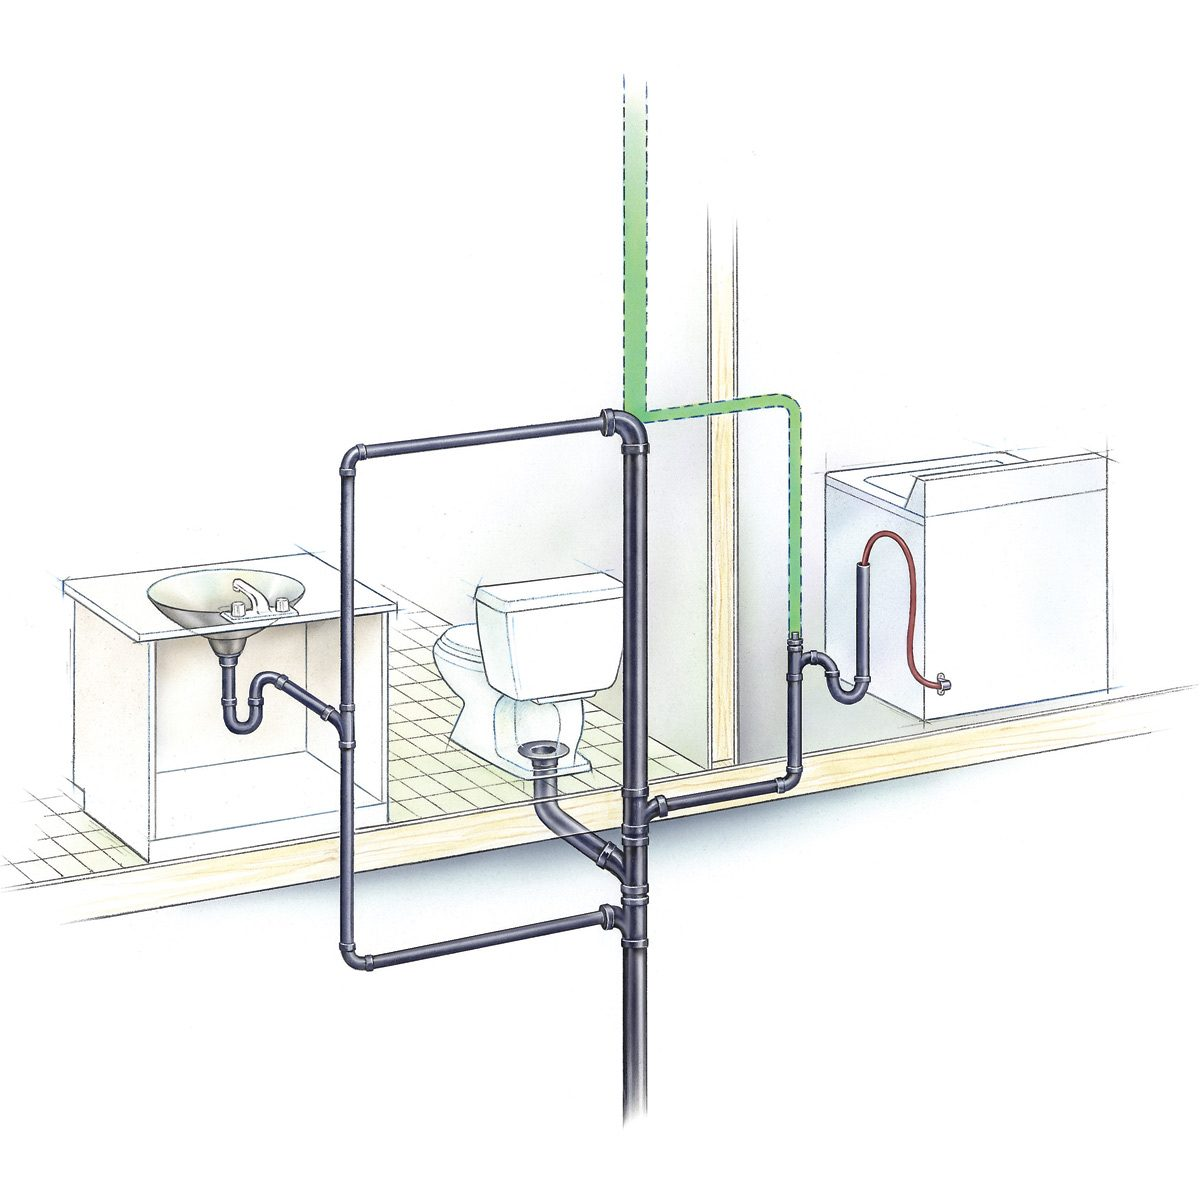 plumbing vent diagram - signs of bad ventilation